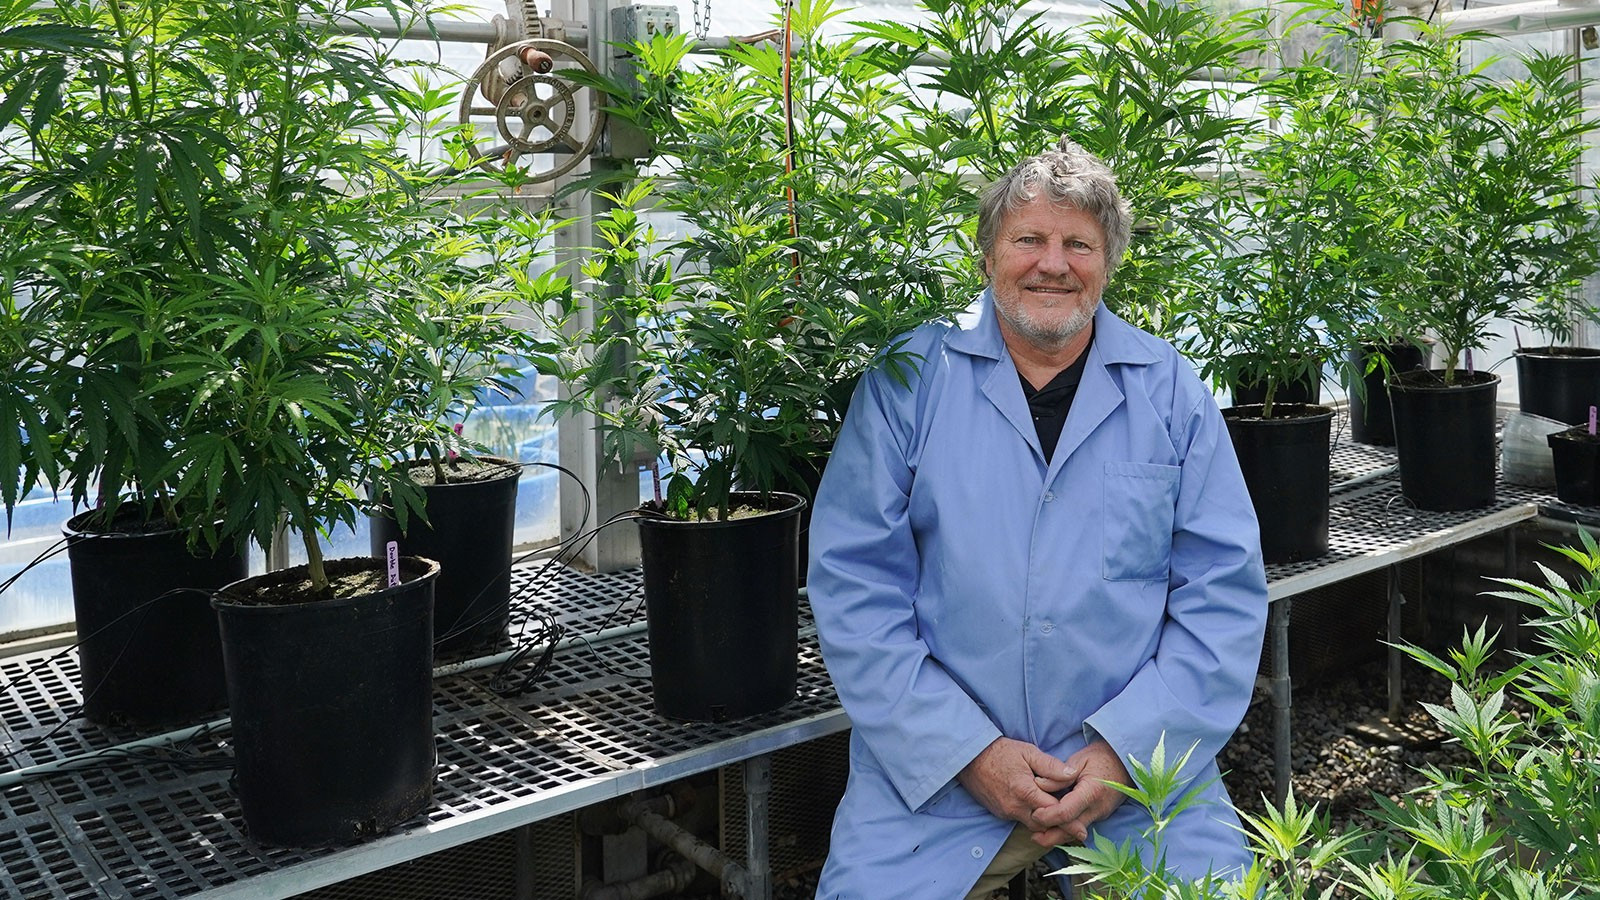 Dr. Bruce Bugbee recieves Fellow of the American Society for Horticultural Science (ASHS)